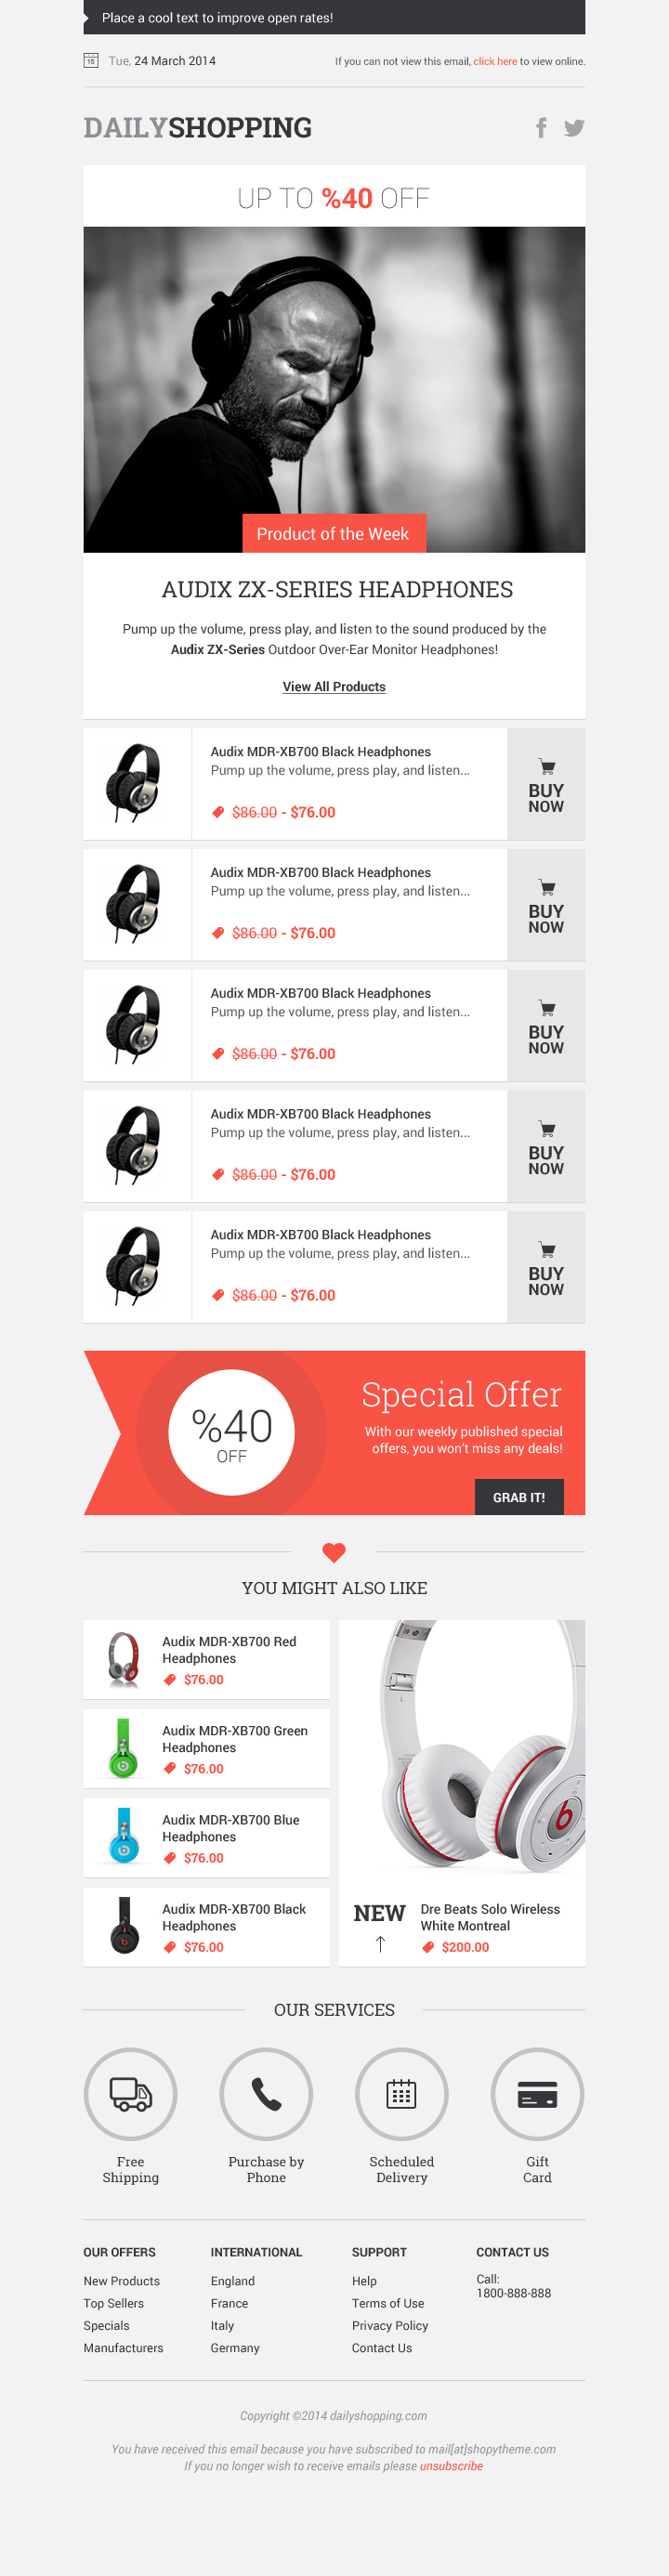 Free Shopping Newsletter Design PSD File